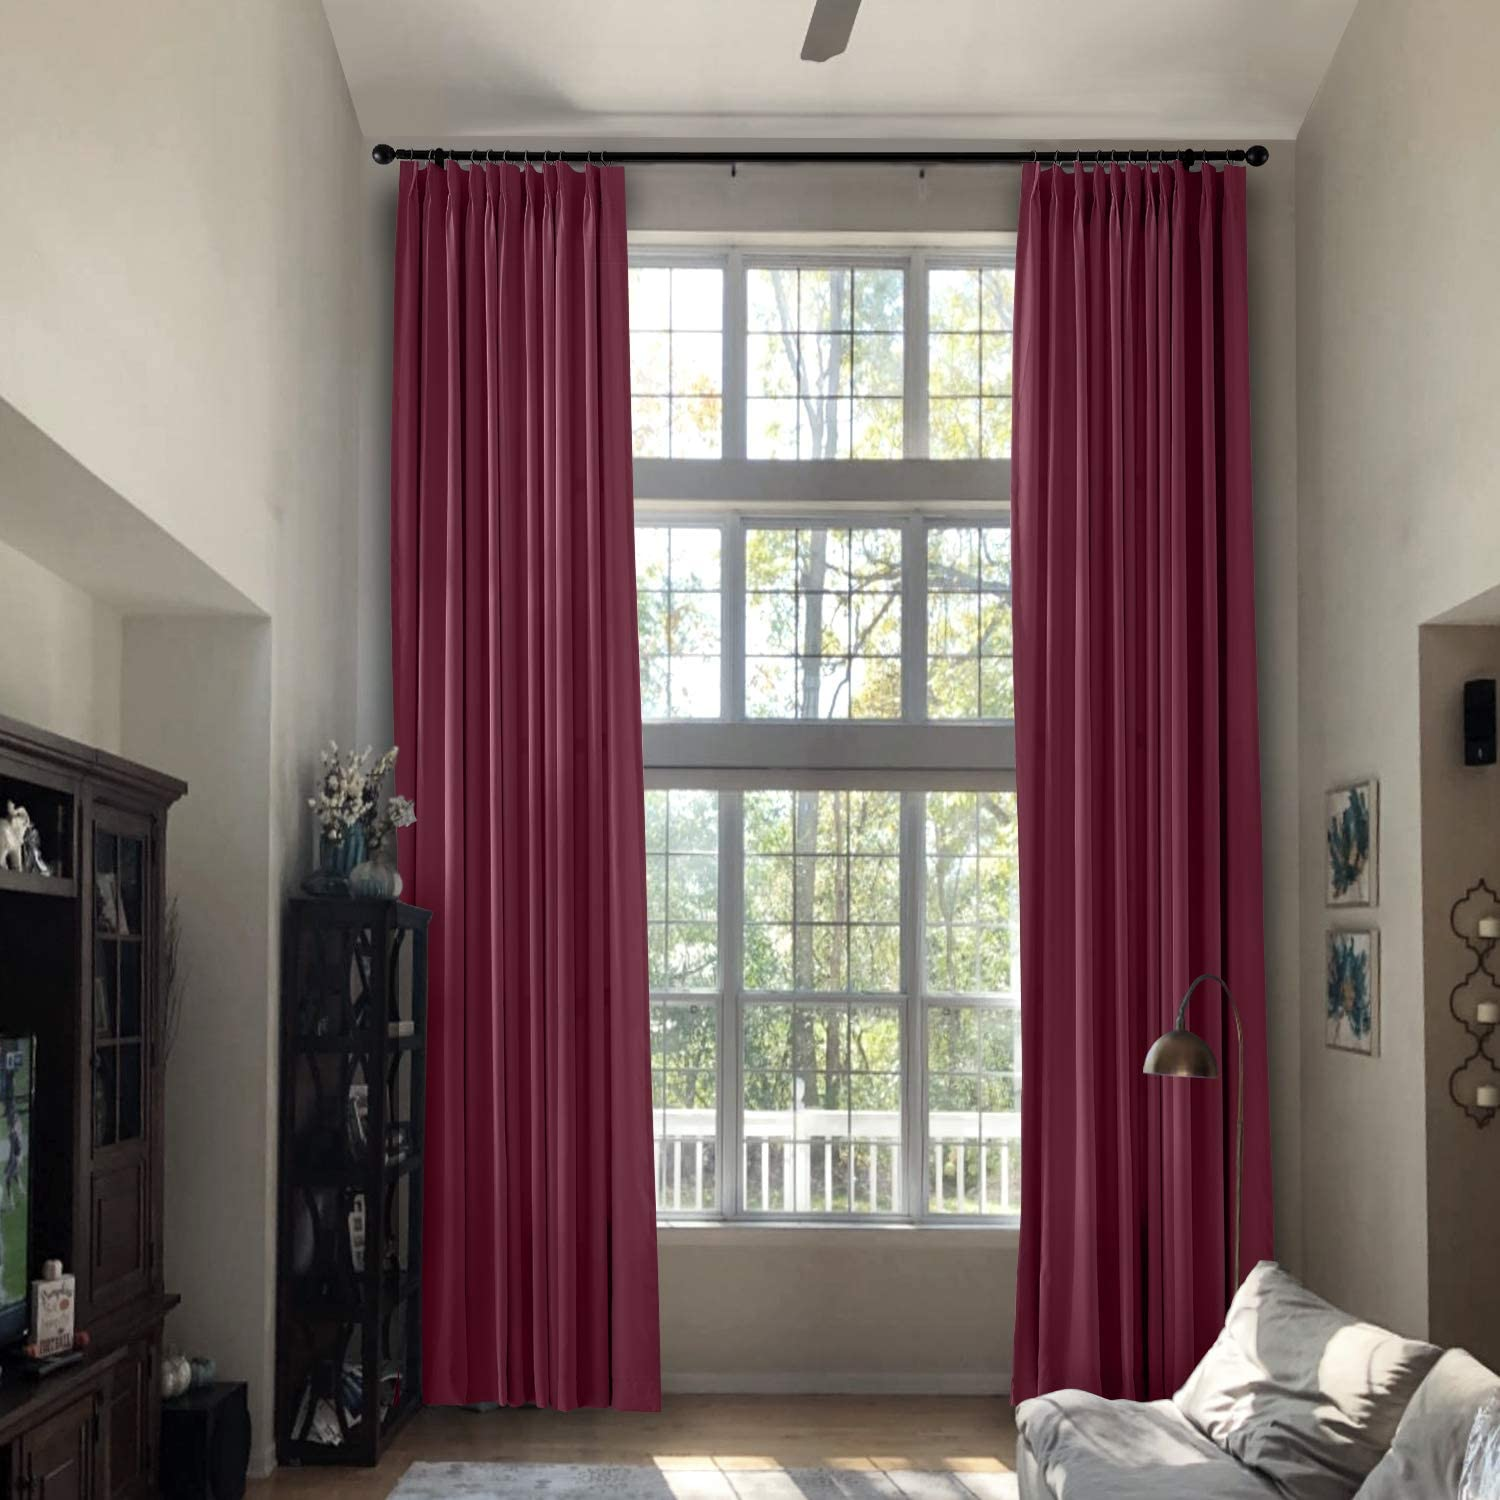 Prim Extra Long Drapes 240 Inches Long Modern Window Curtains Pinch Pleat Blackout Room Darkening Curtains For Loft Burgundy Red 1 Panel Amazon Co Uk Kitchen Home